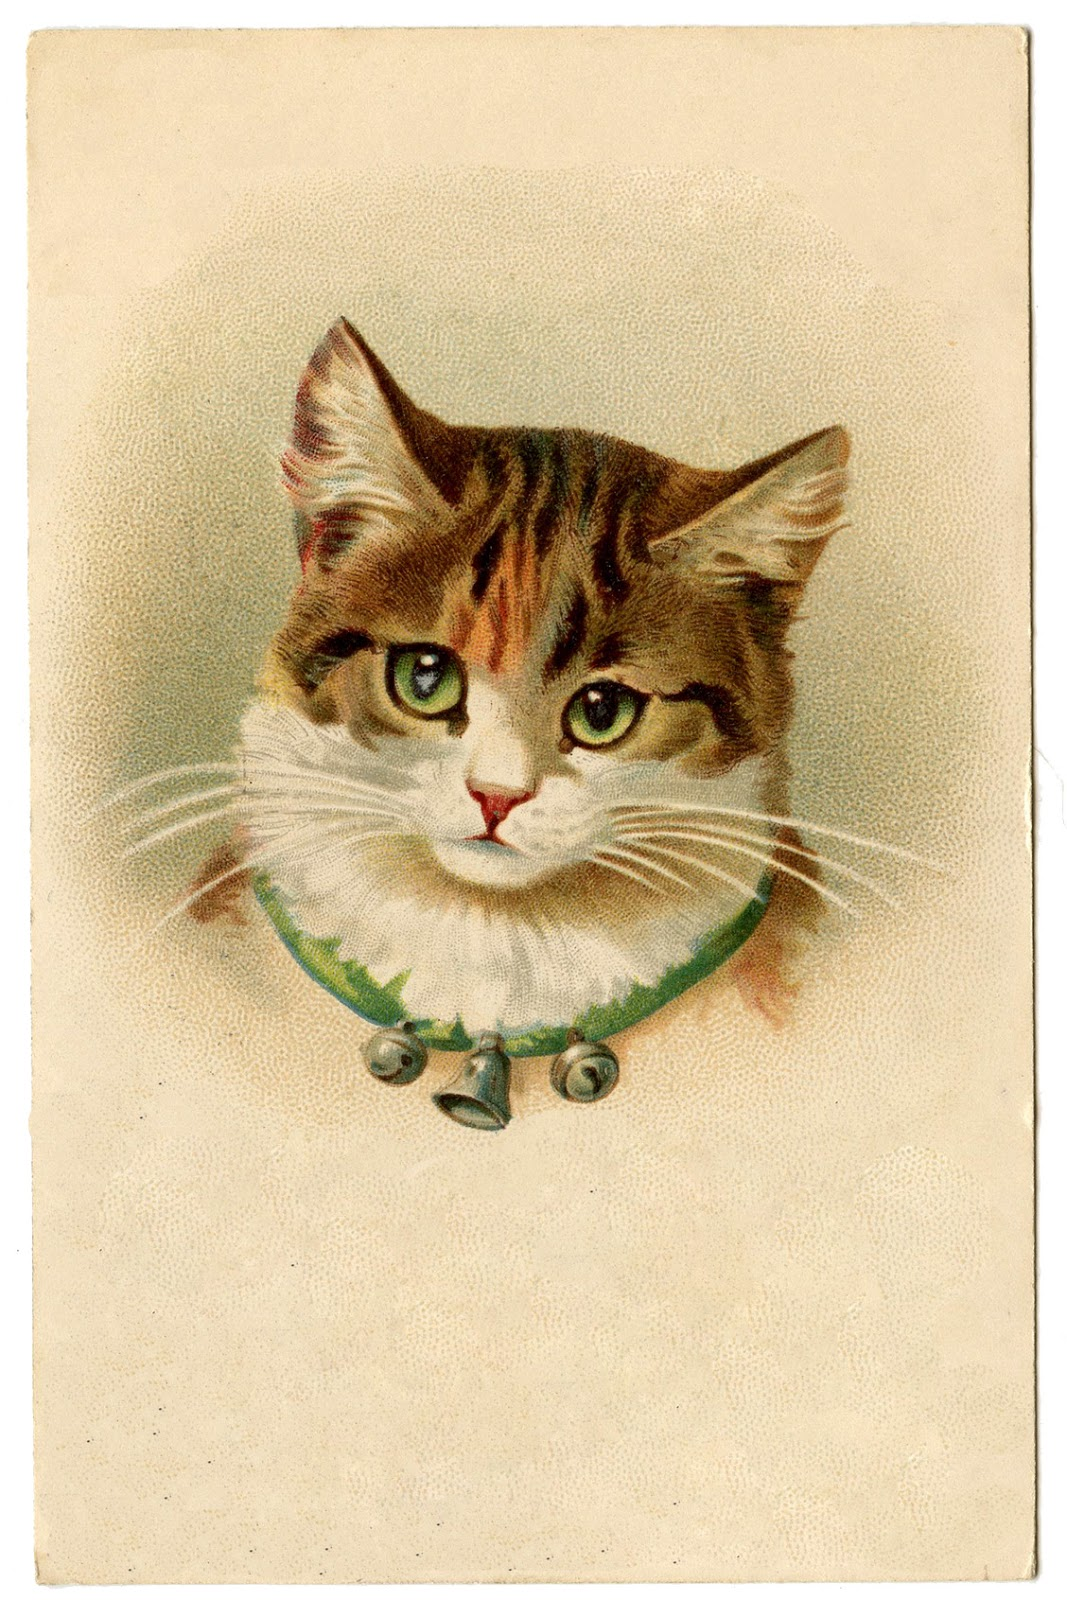 Vintage Pictures - Cute Kitty Cat with Bells - The Graphics Fairy